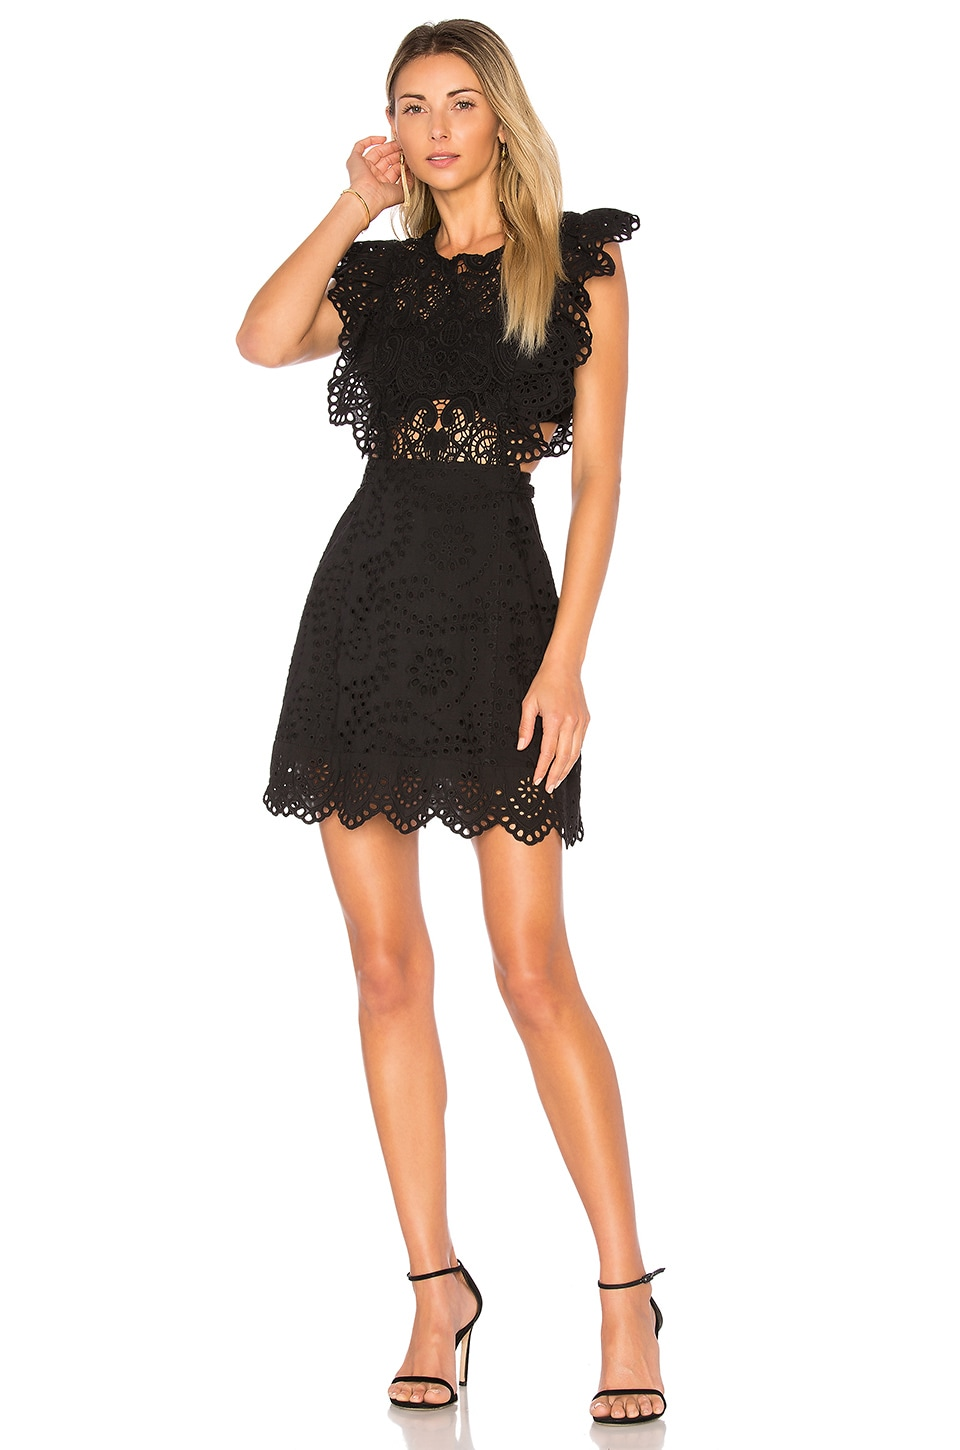 Black dress mini - Nightcap Eyelet Apron Mini Dress In Black